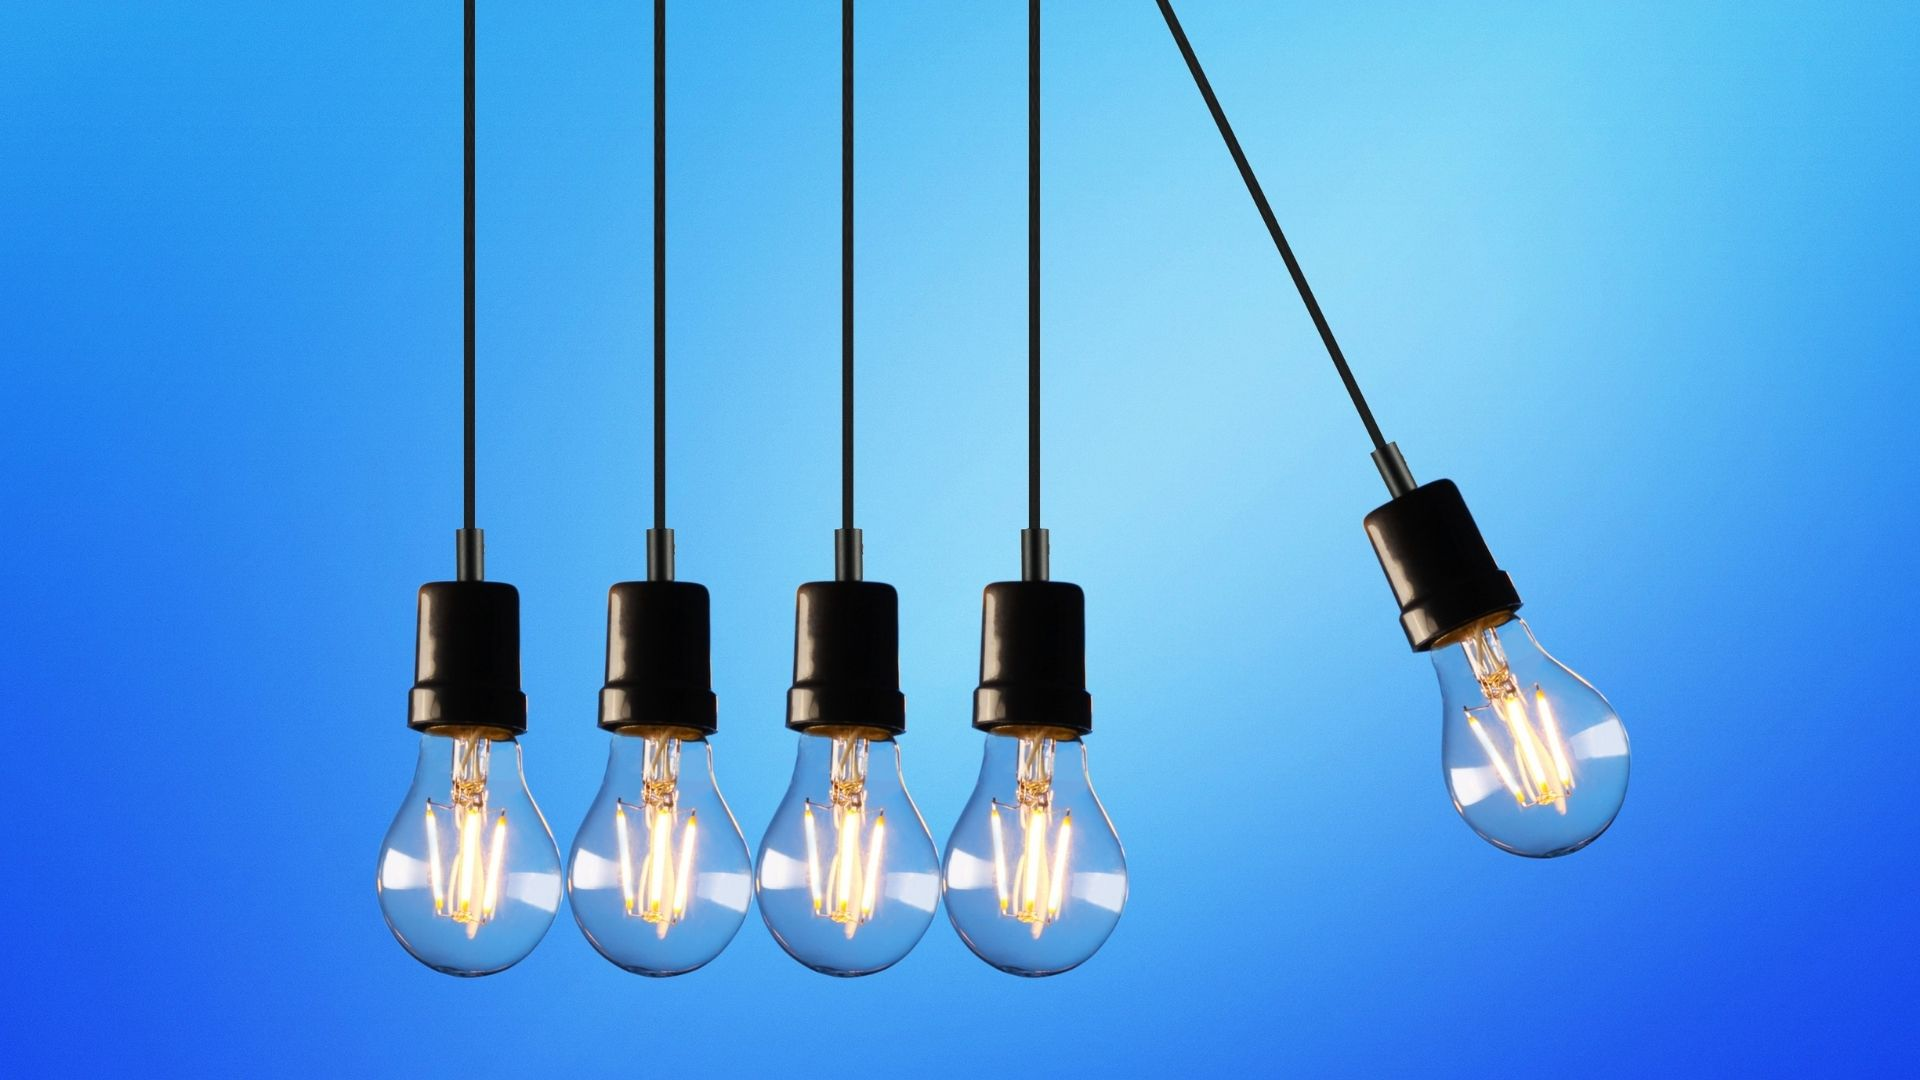 My Electrical Expert Offers a Range of Electrical Services Backed By Years of Industry Expertise 1